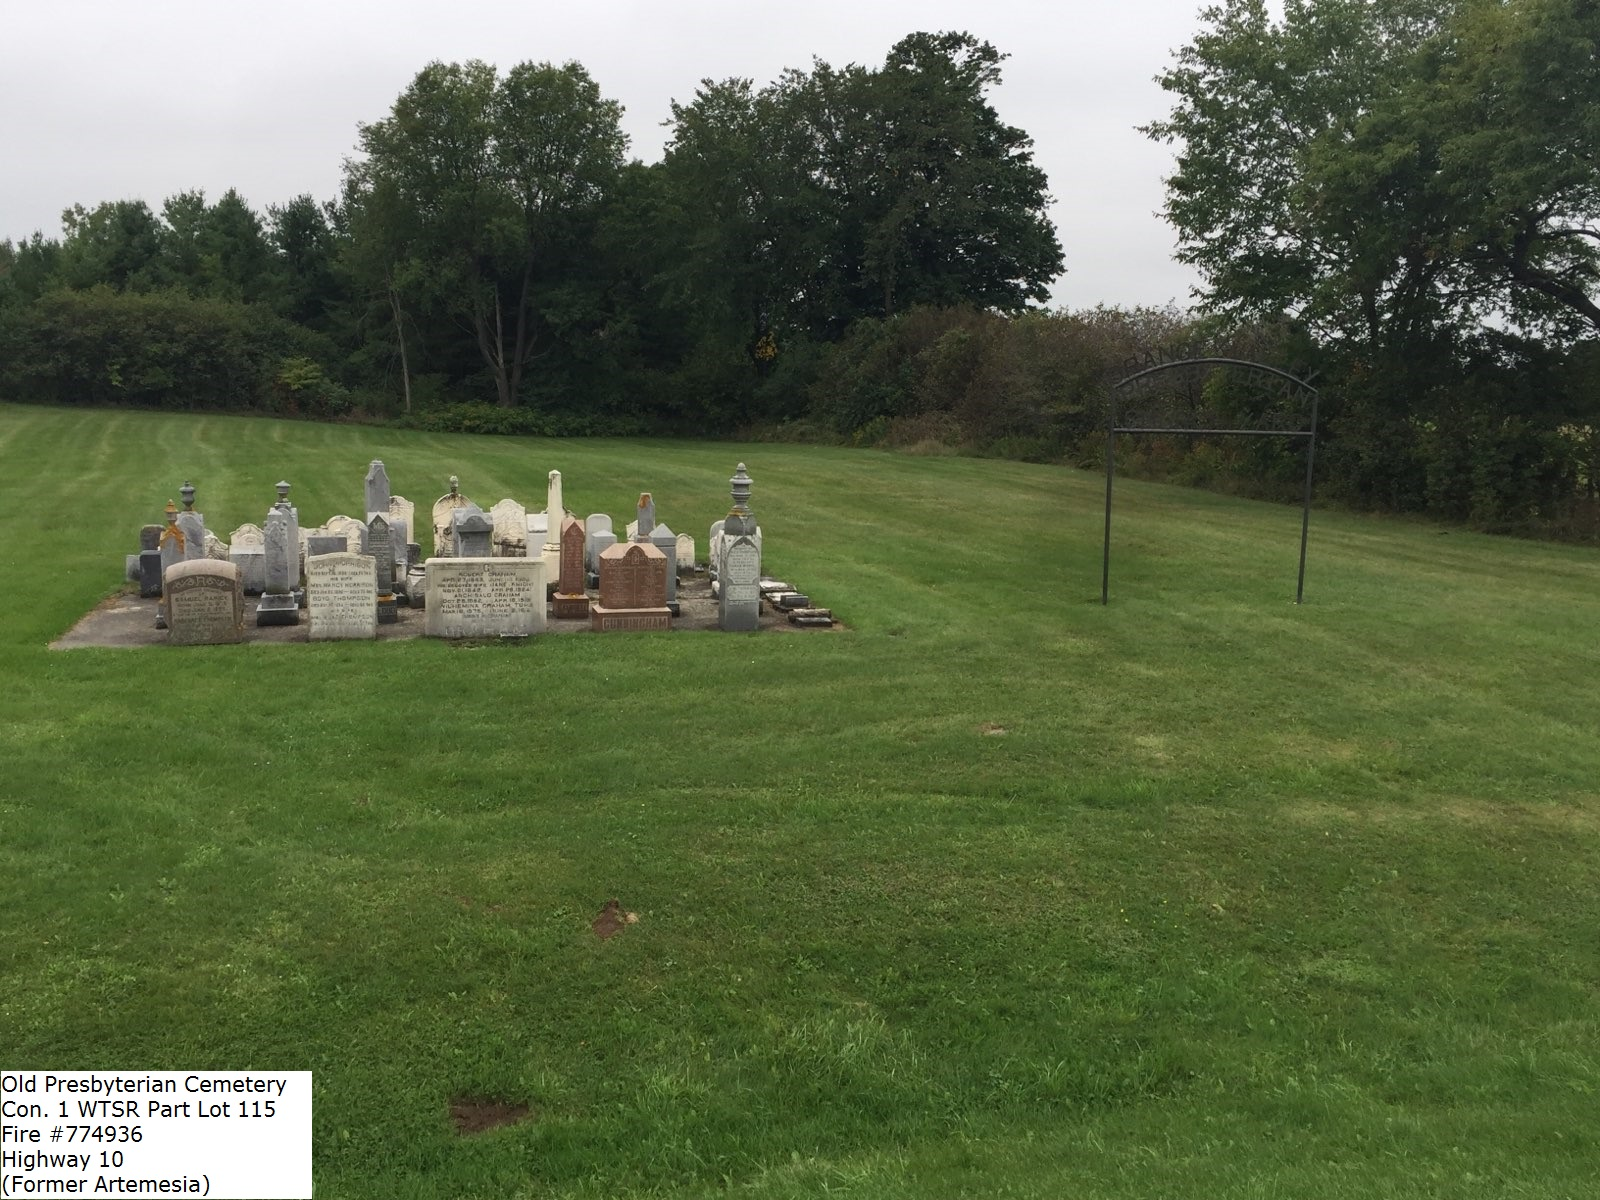 Picture of Old Presbyterian Cemetery (Cookes Presbyterian